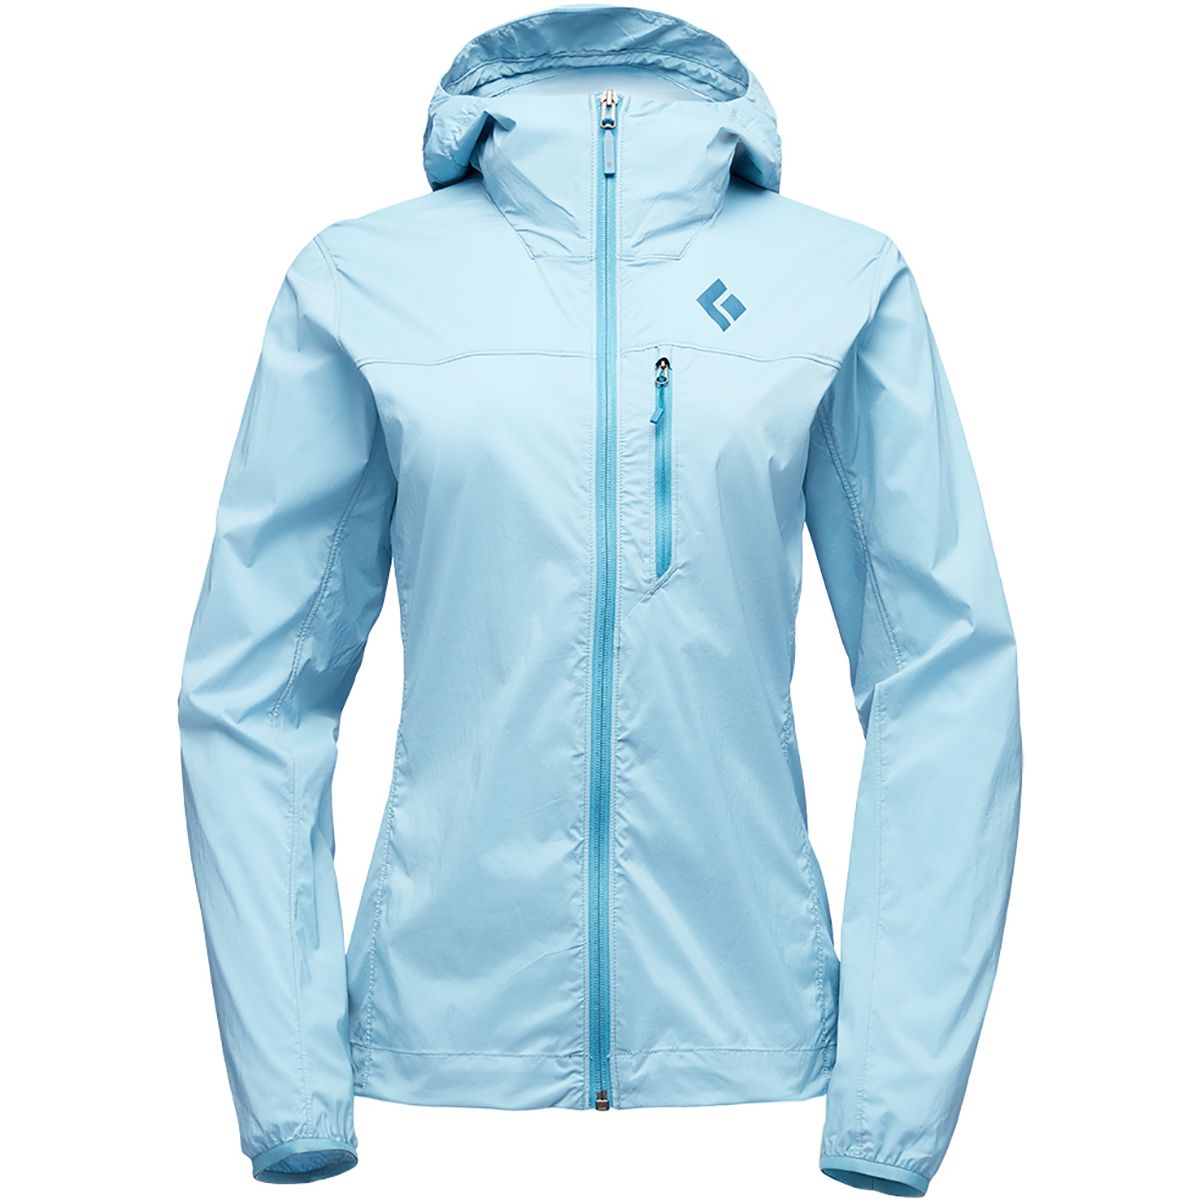 Black Diamond Damen Alpine Start Hooded Jacke (Größe M, Blau)